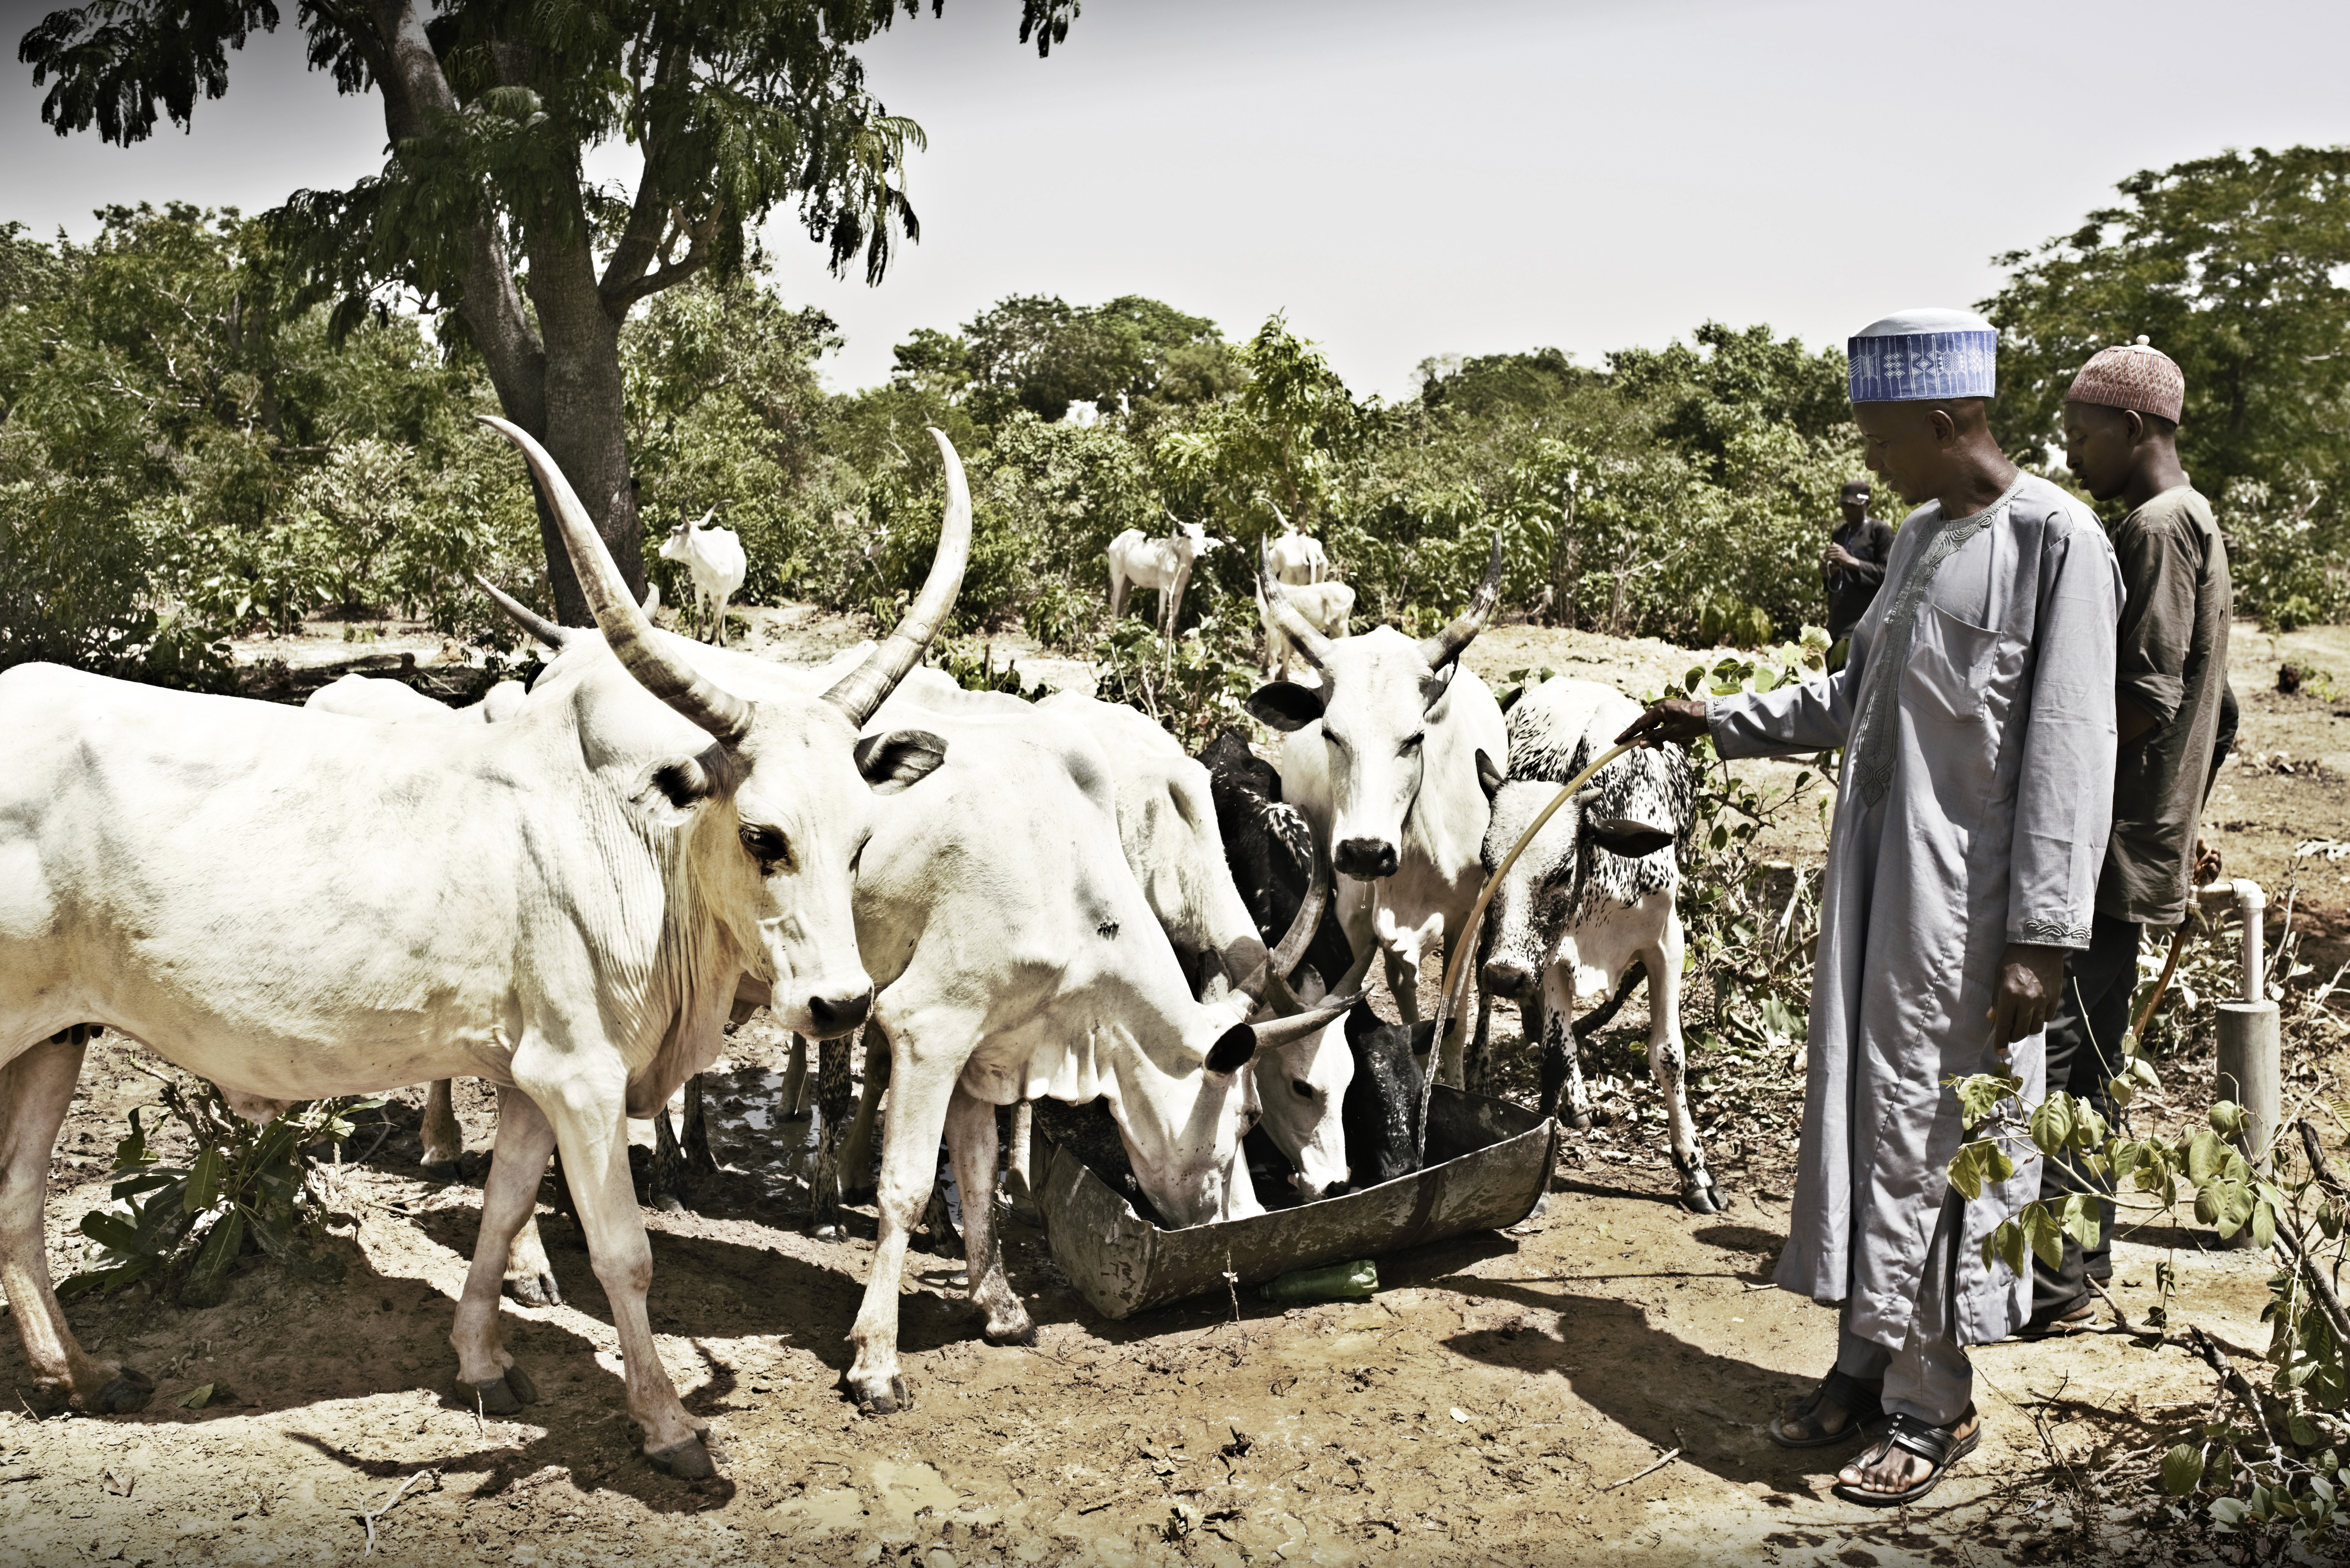 Arla scales up its commitment to develop a sustainable dairy sector in Nigeria